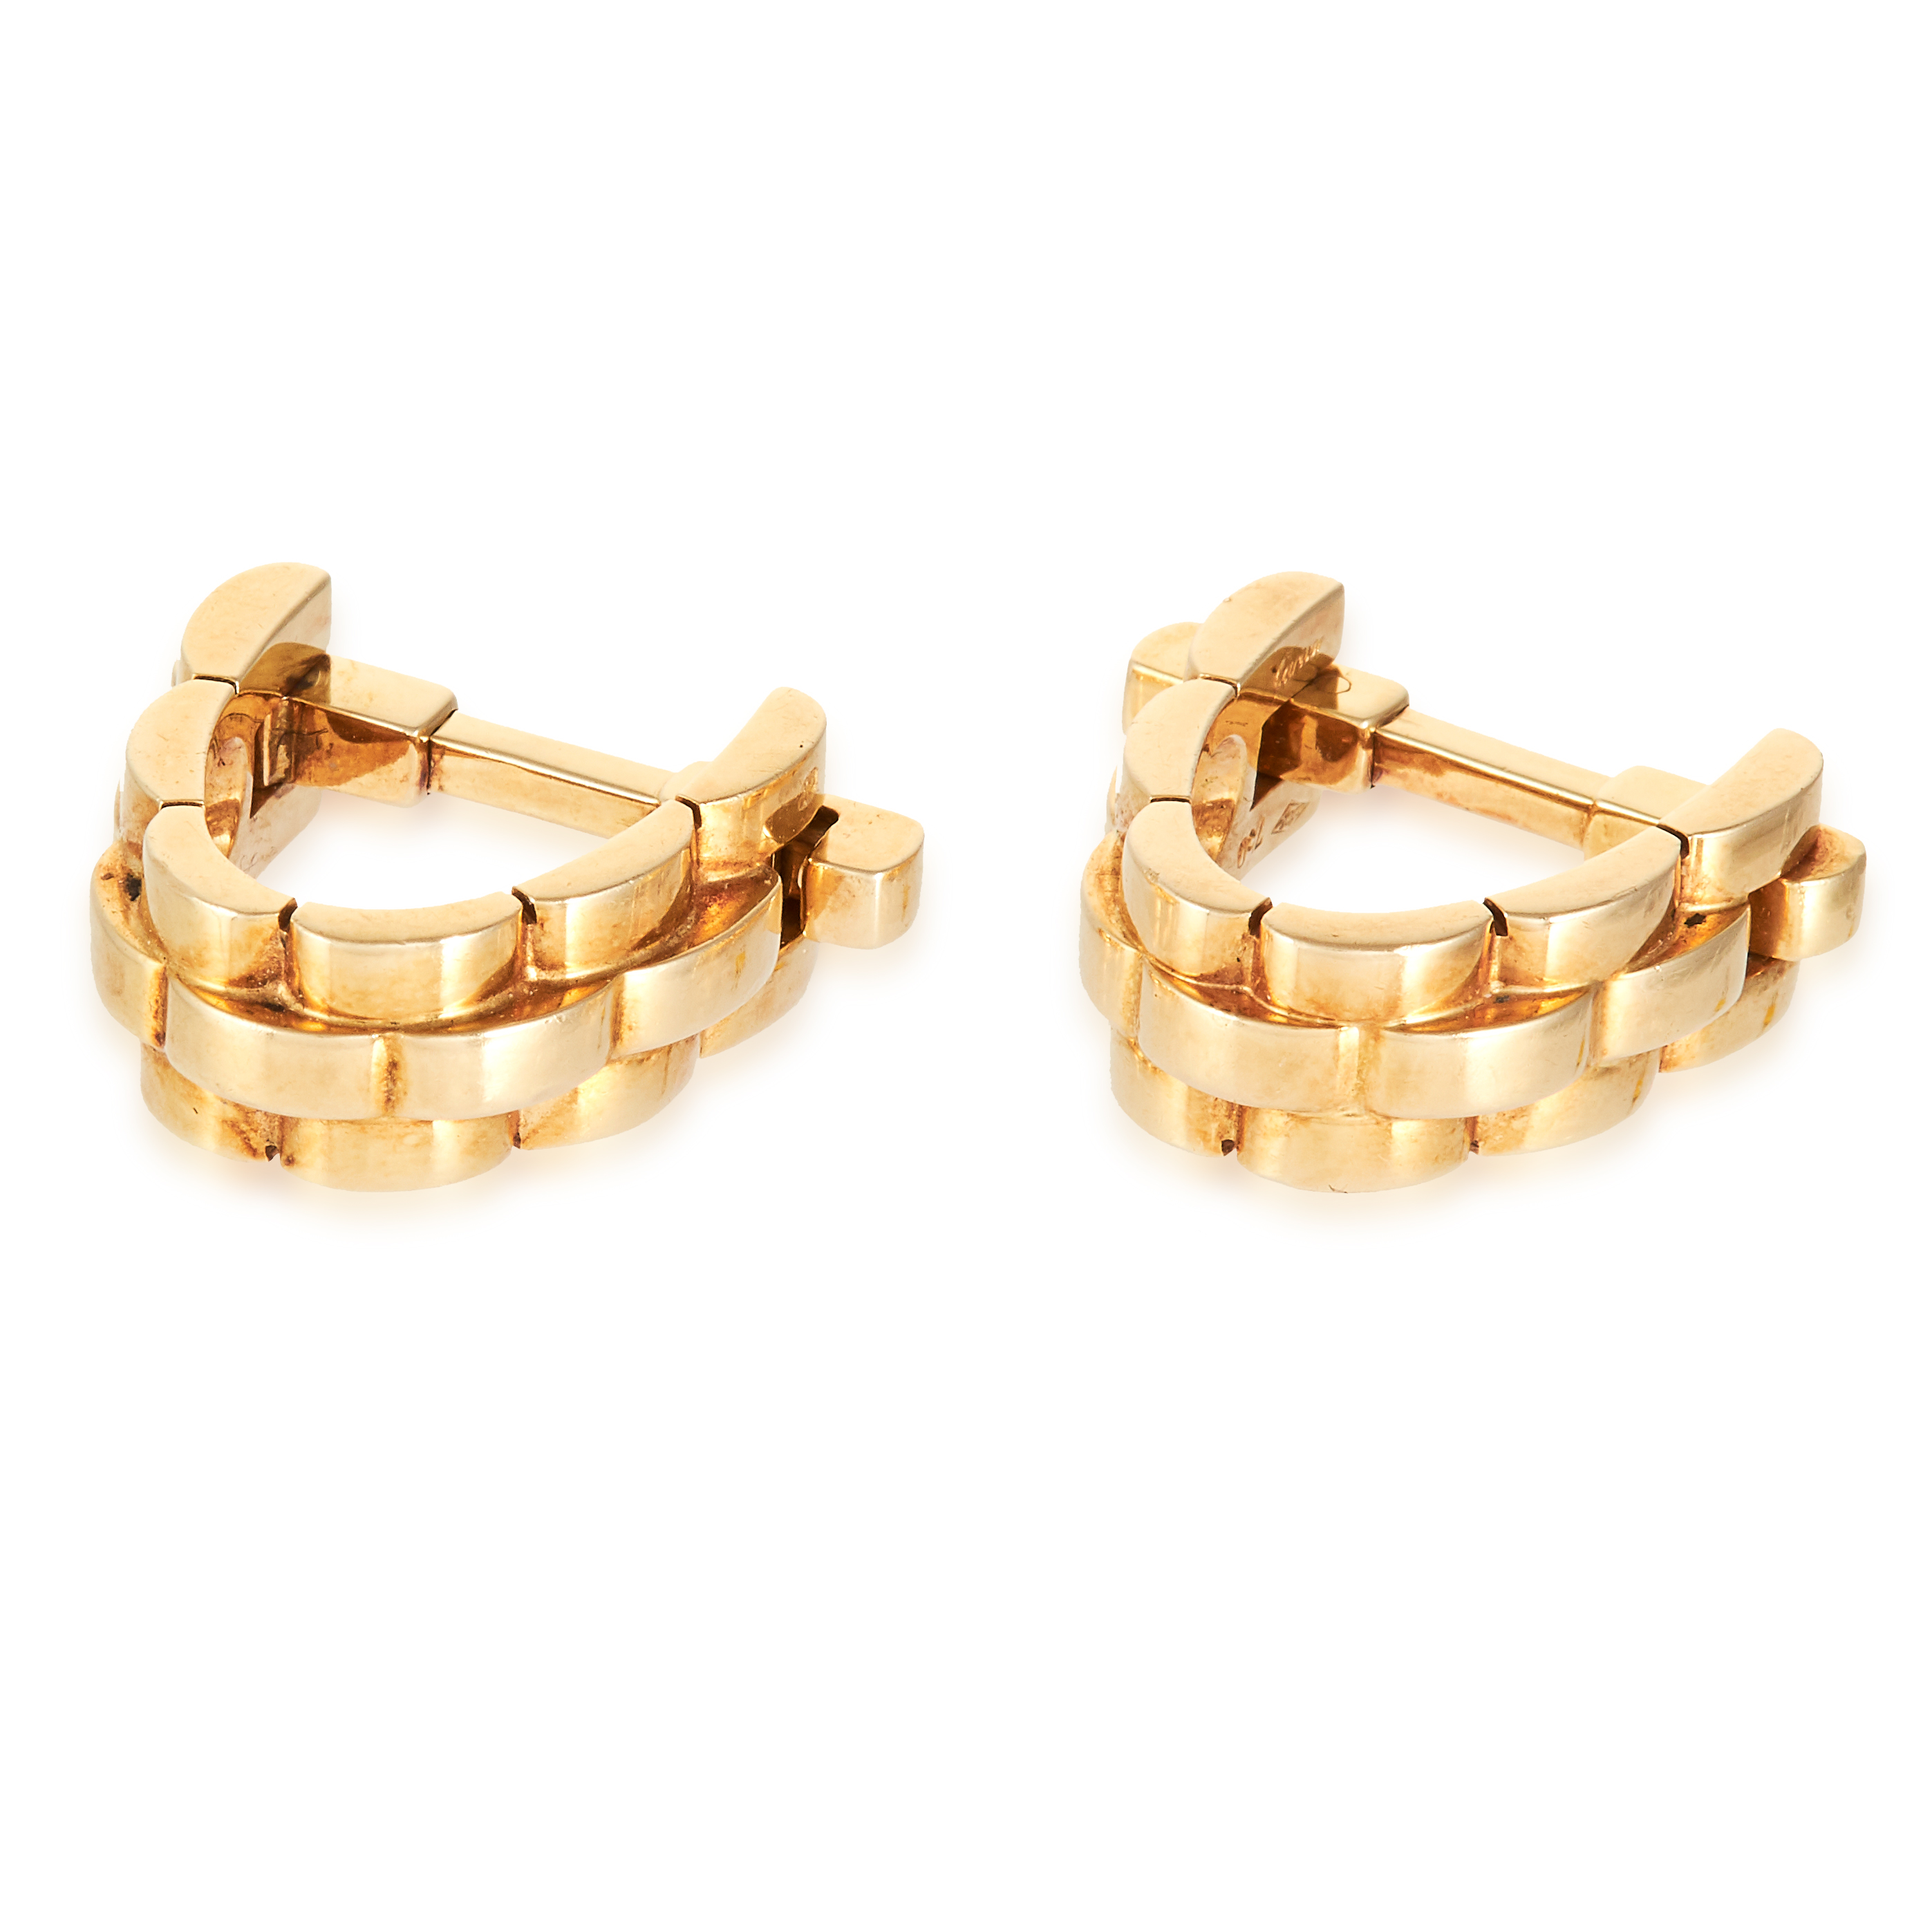 A PAIR OF CUFFLINKS BY CARTIER in 18ct yellow gold, with tapered designs, signed Cartier and